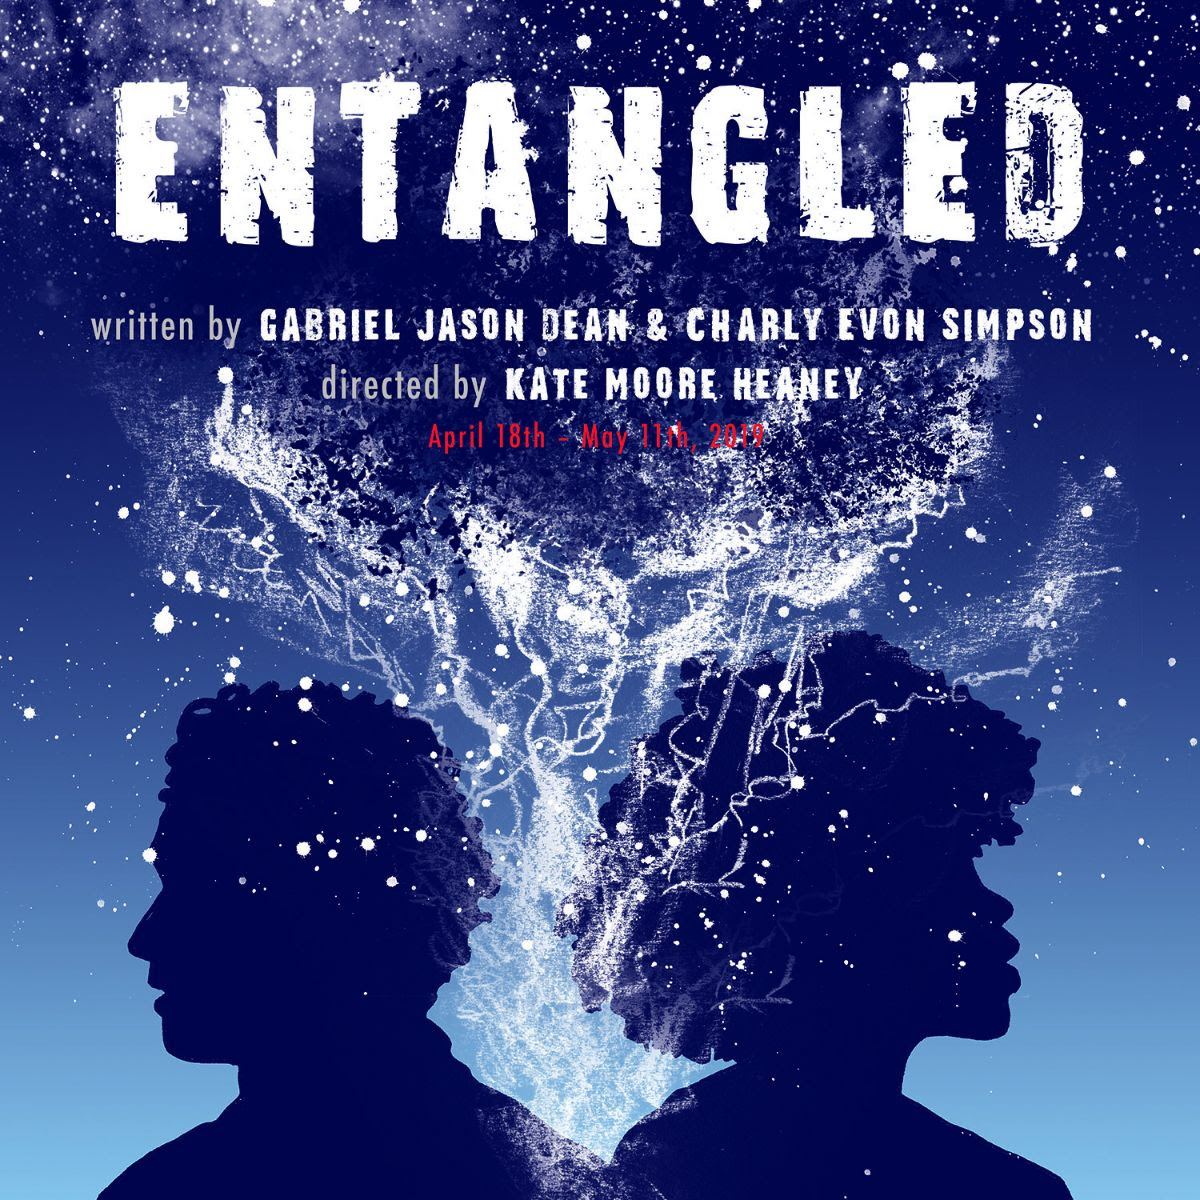 ENTANGLED April 18 - May 11 - Written by Charly Evon Simpson & Gabriel Jason Dean @ The Jeffrey and Paula Gural Theatre atA.R.T./New York Theatres 502 West 53rd StreetIn the aftermath of a mass shooting in NYC, the black mother of a victim and the white brother of the shooter try to make sense of what happened, each individually grappling with a soul-shattering experience that few understand. An exploration of loss and survival, ENTANGLED is the story of two strangers connected by tragedy in a nation still struggling to see itself for what it is.The cast...James Kautz & Naomi Lorrain.Click here for tickets!